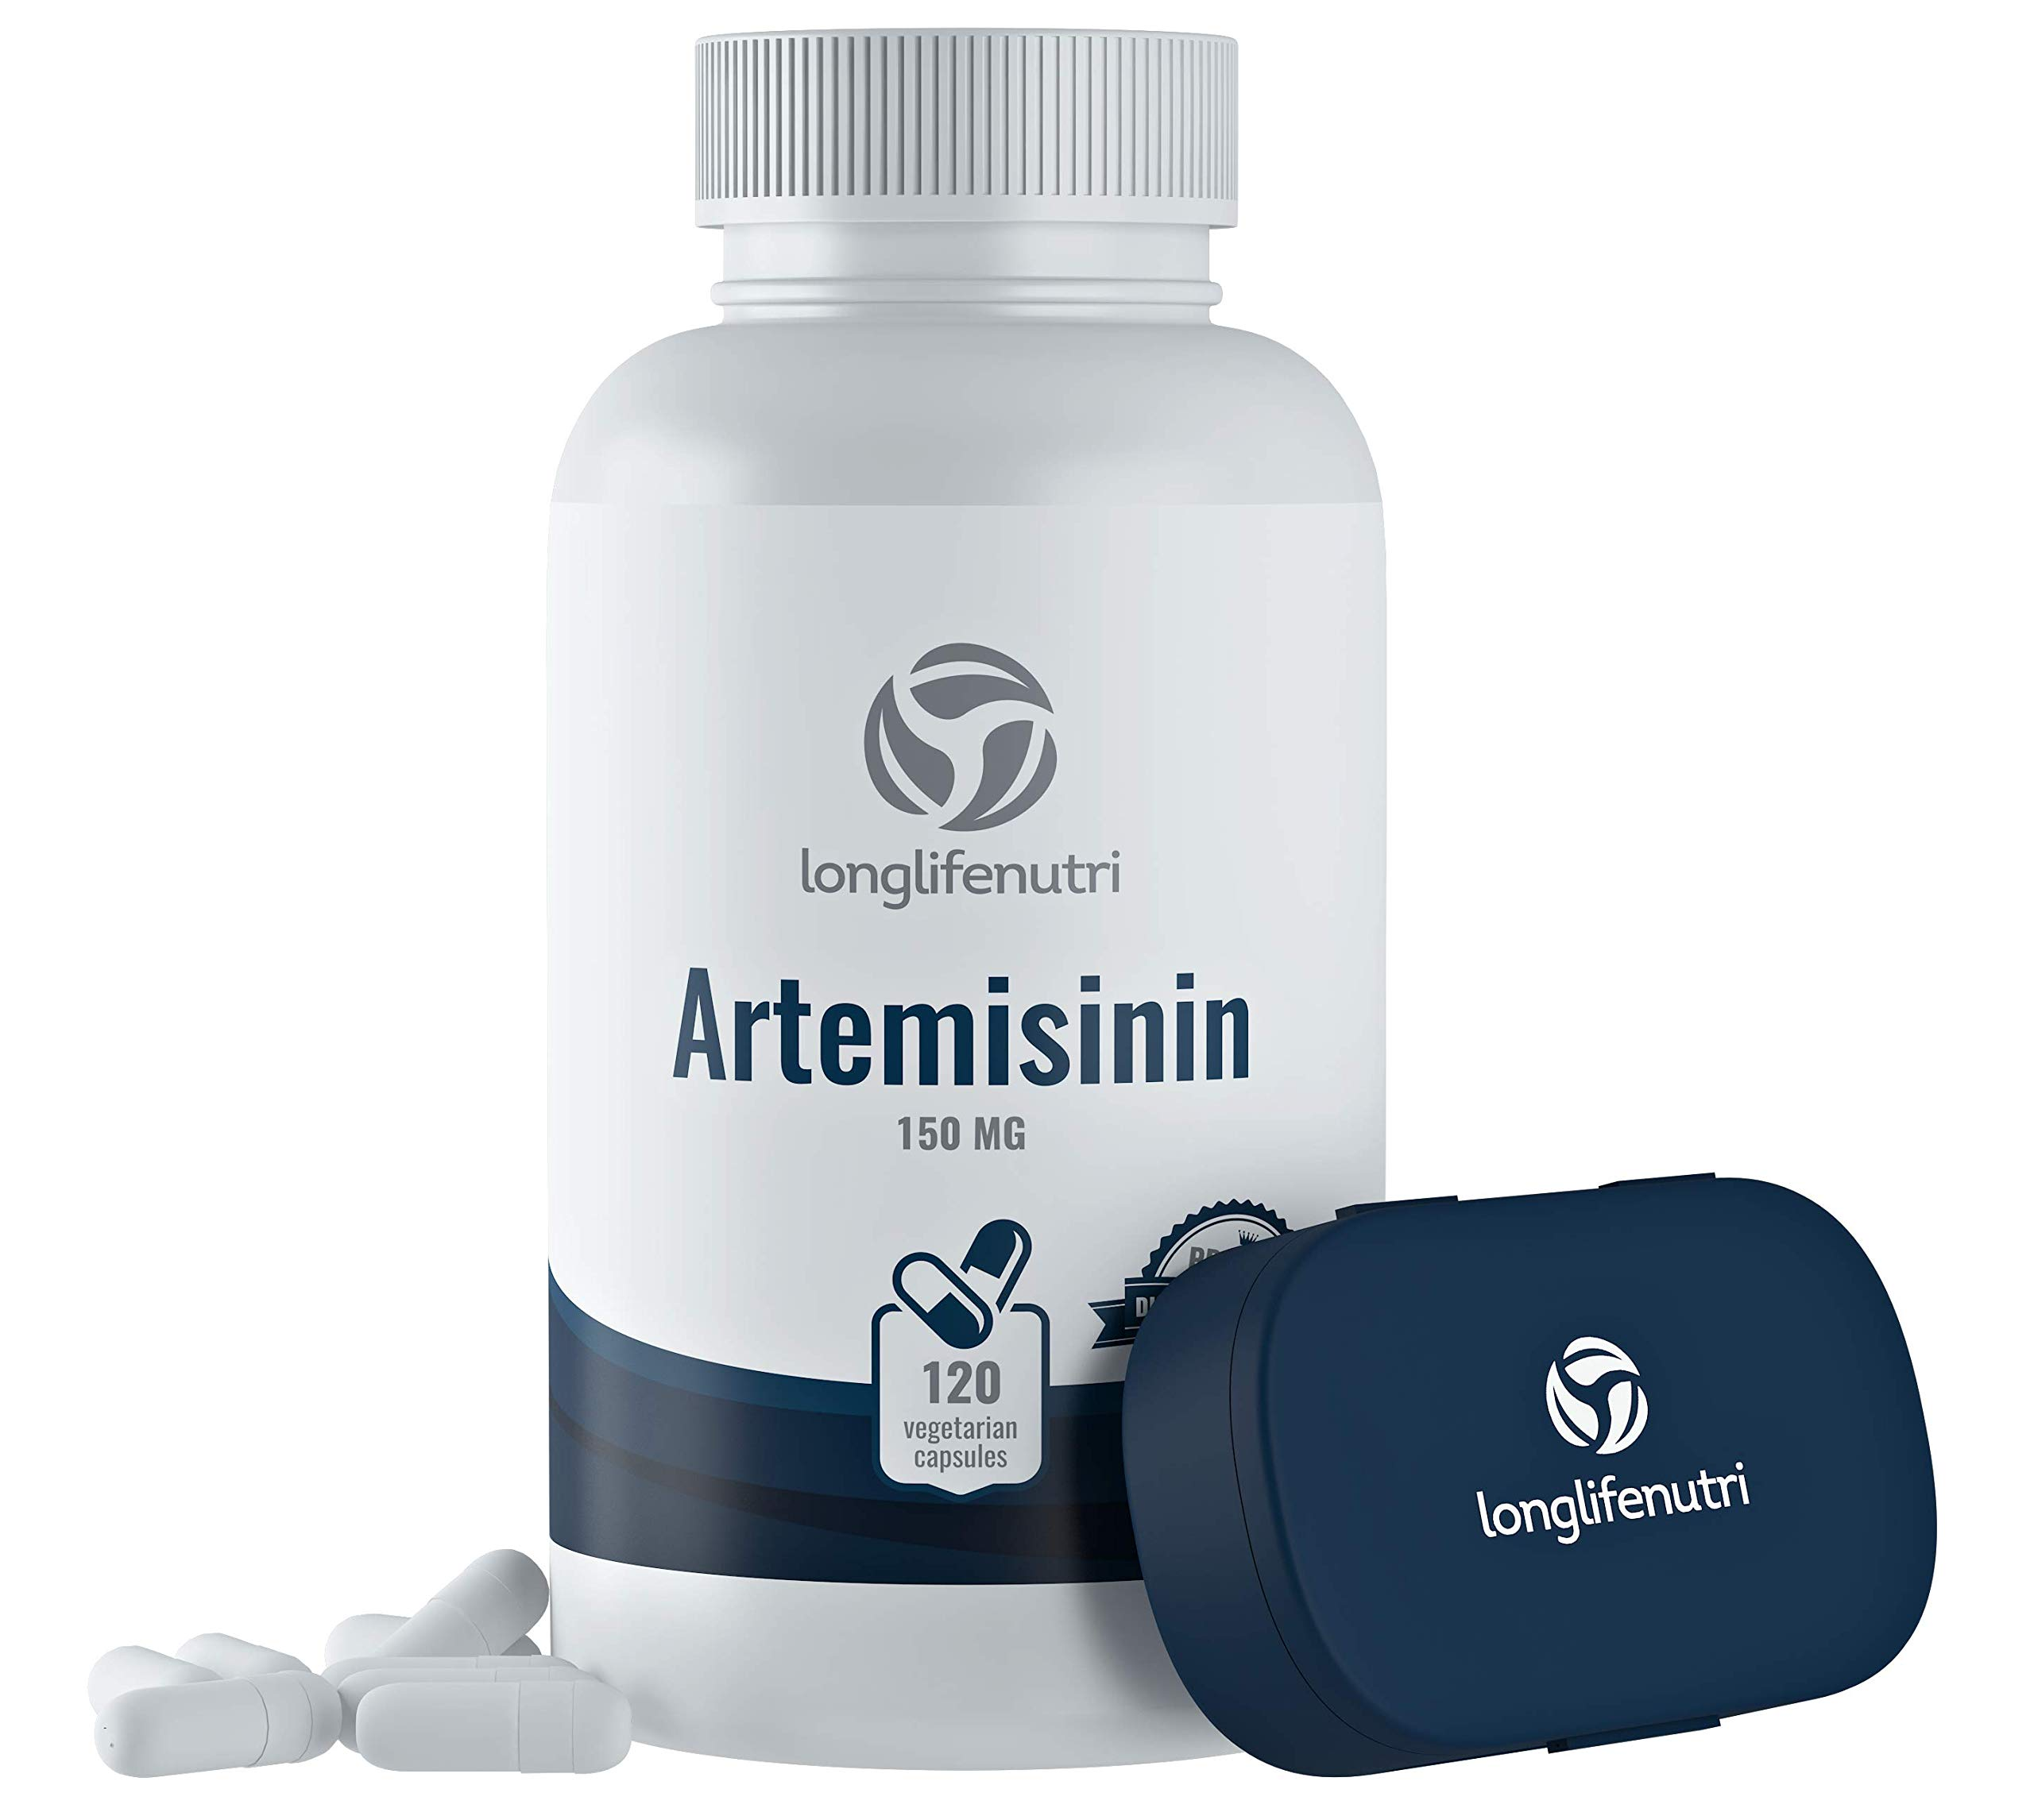 Artemisinin 150mg - 120 Vegetarian Capsules | Made in USA | 4 Months Supply | Supports Healthy Aging and Cell Repair Supplement | Pure Sweet Wormwood Extract 150 mg SuperComplex Powder Pill